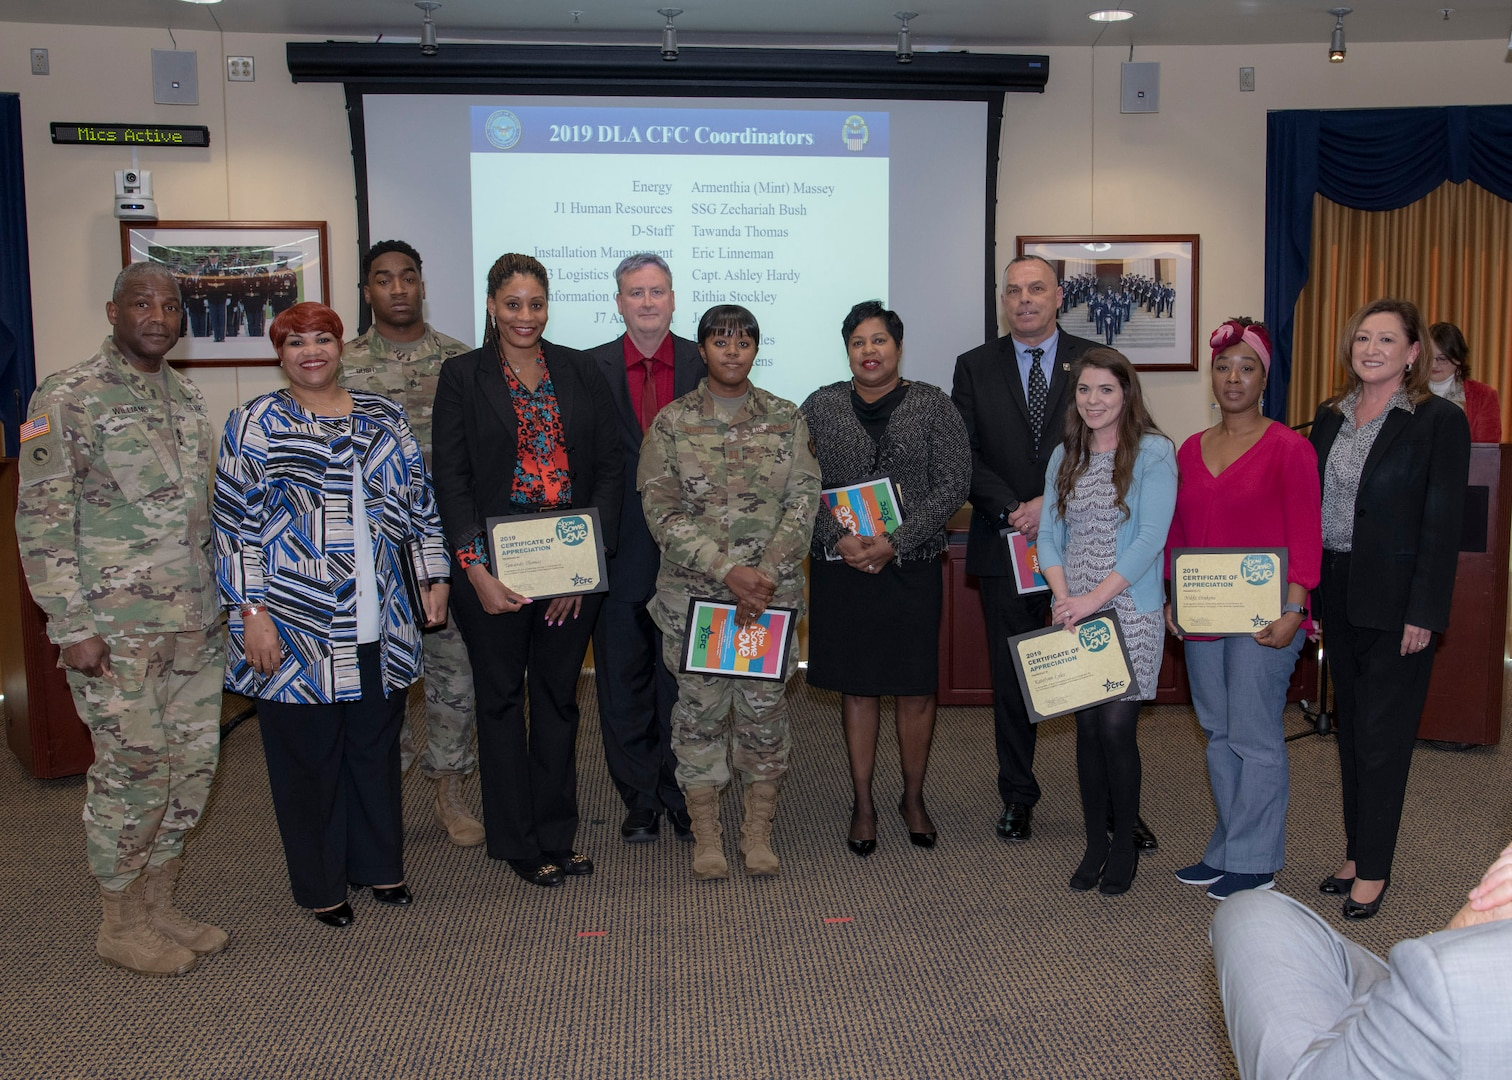 Three men and six women pose with the DLA Director and DLA Acquisition Deputy Director during the CFC closing ceremony.